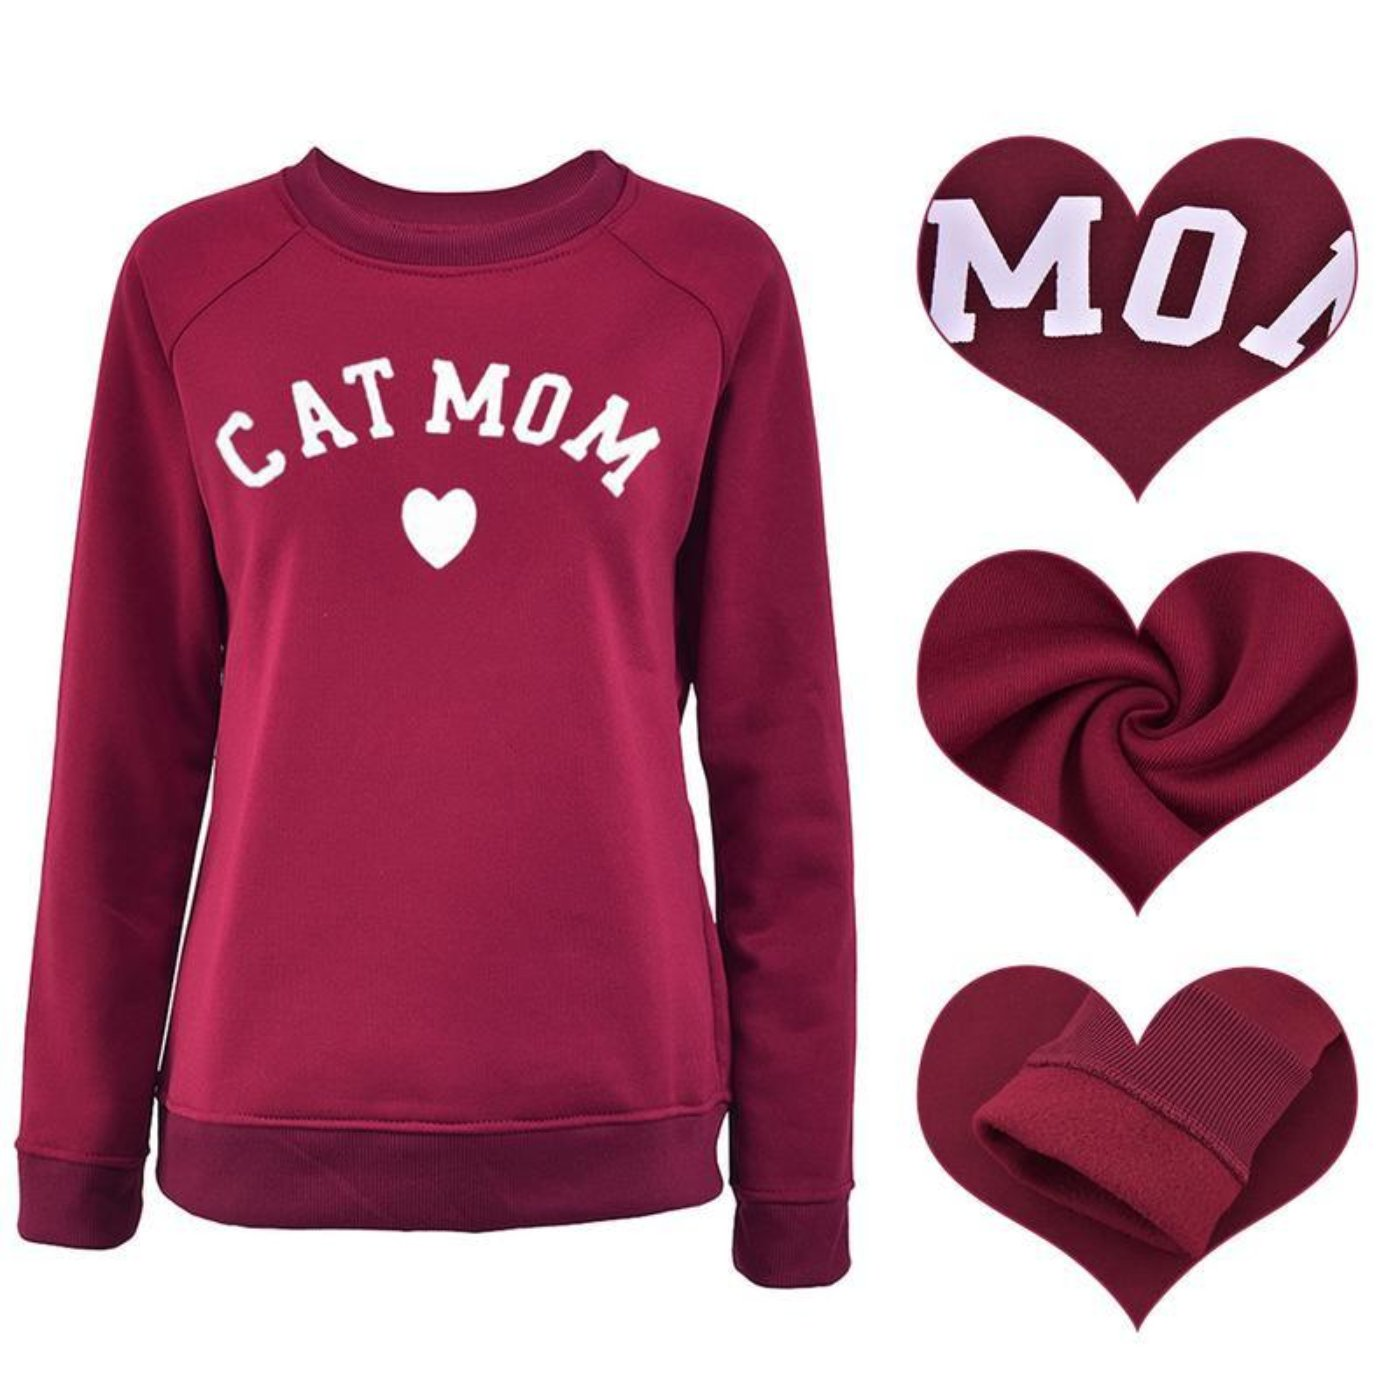 Cat Mom Fashionable Heart - Shaped Print Women Sweatshirt - Blindly Shop